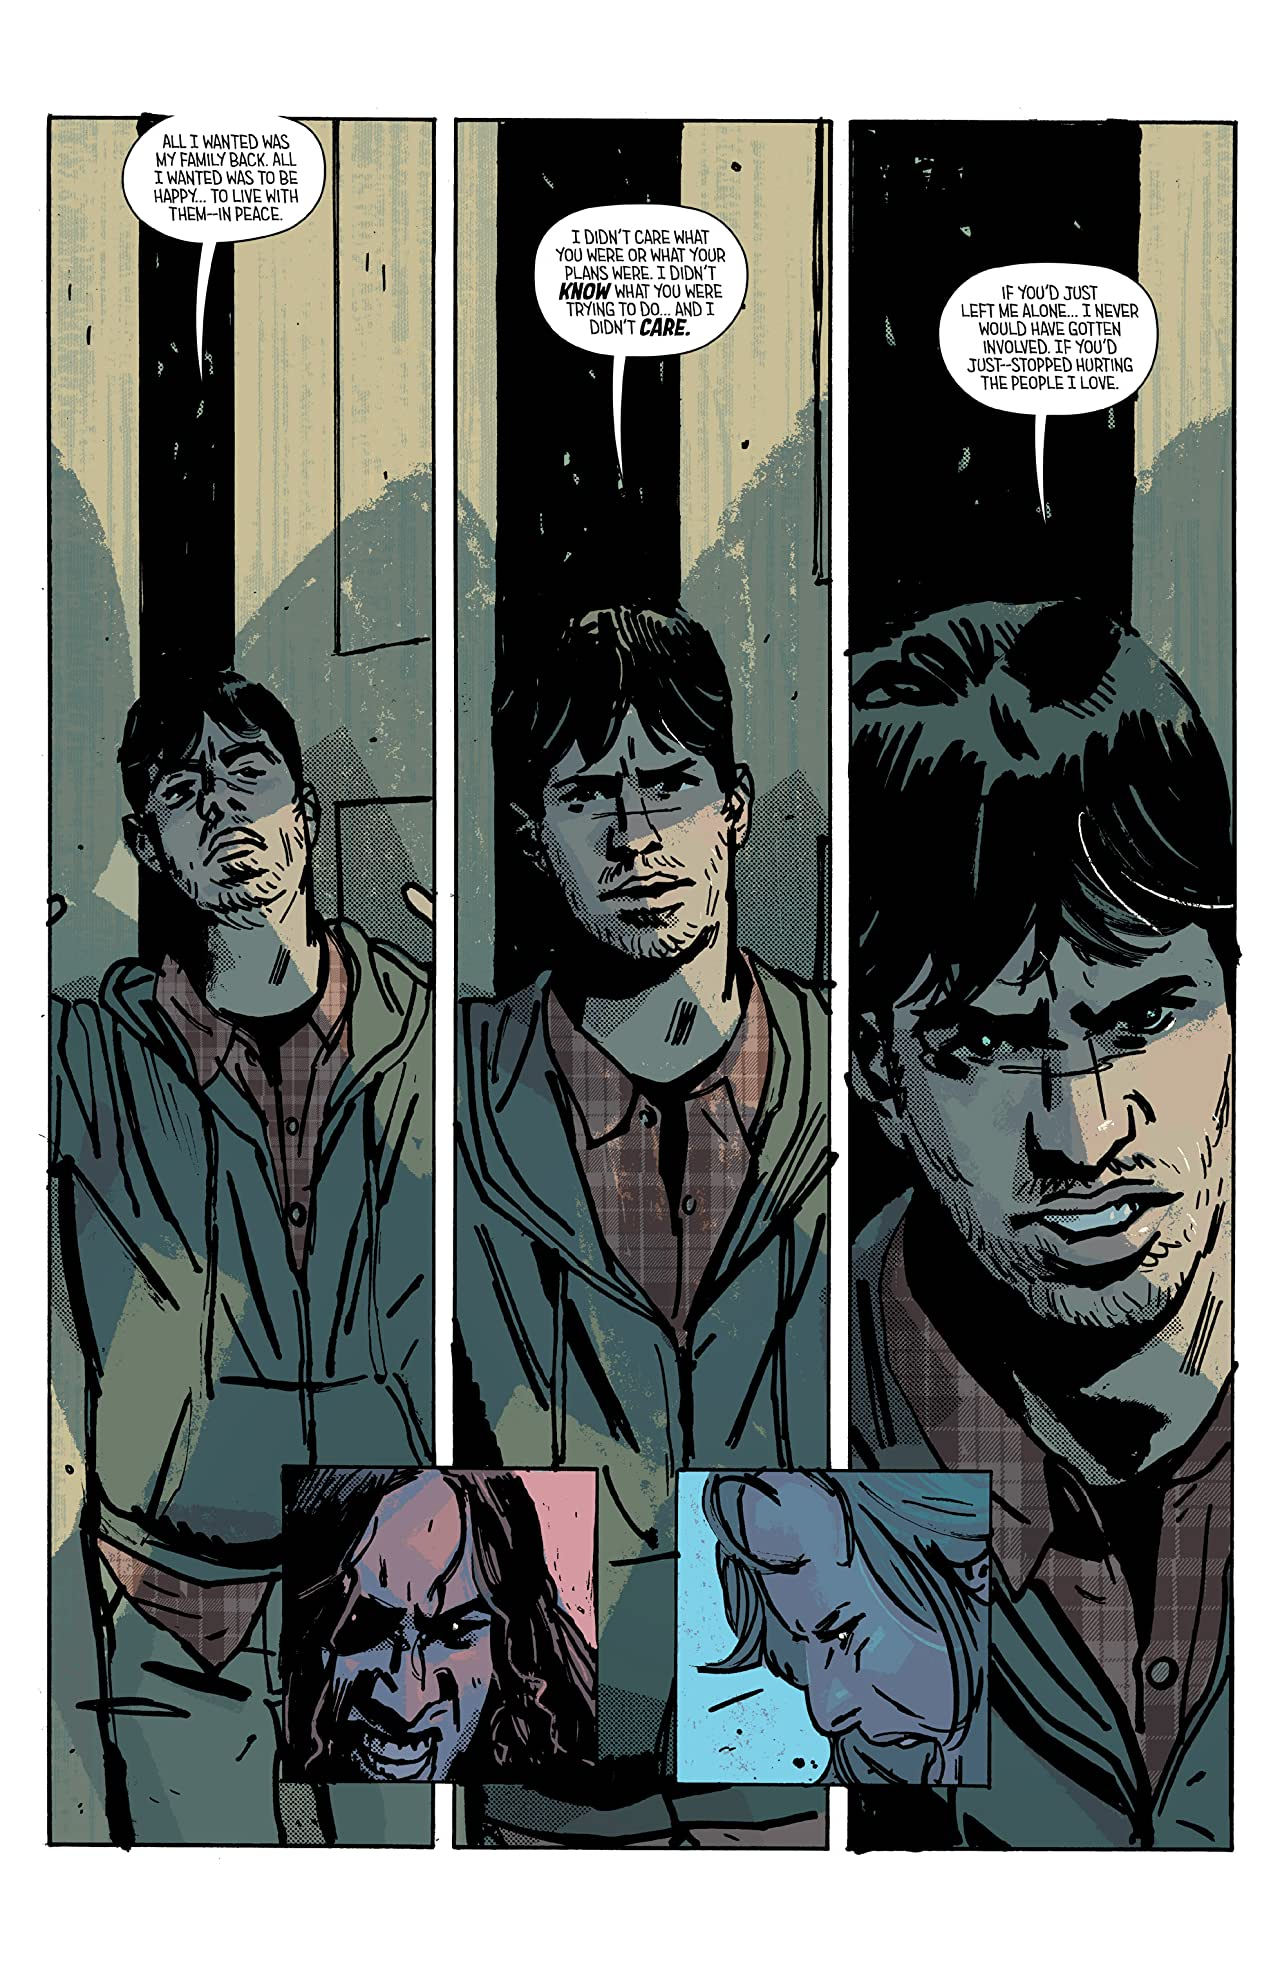 Outcast By Kirkman & Azaceta #36